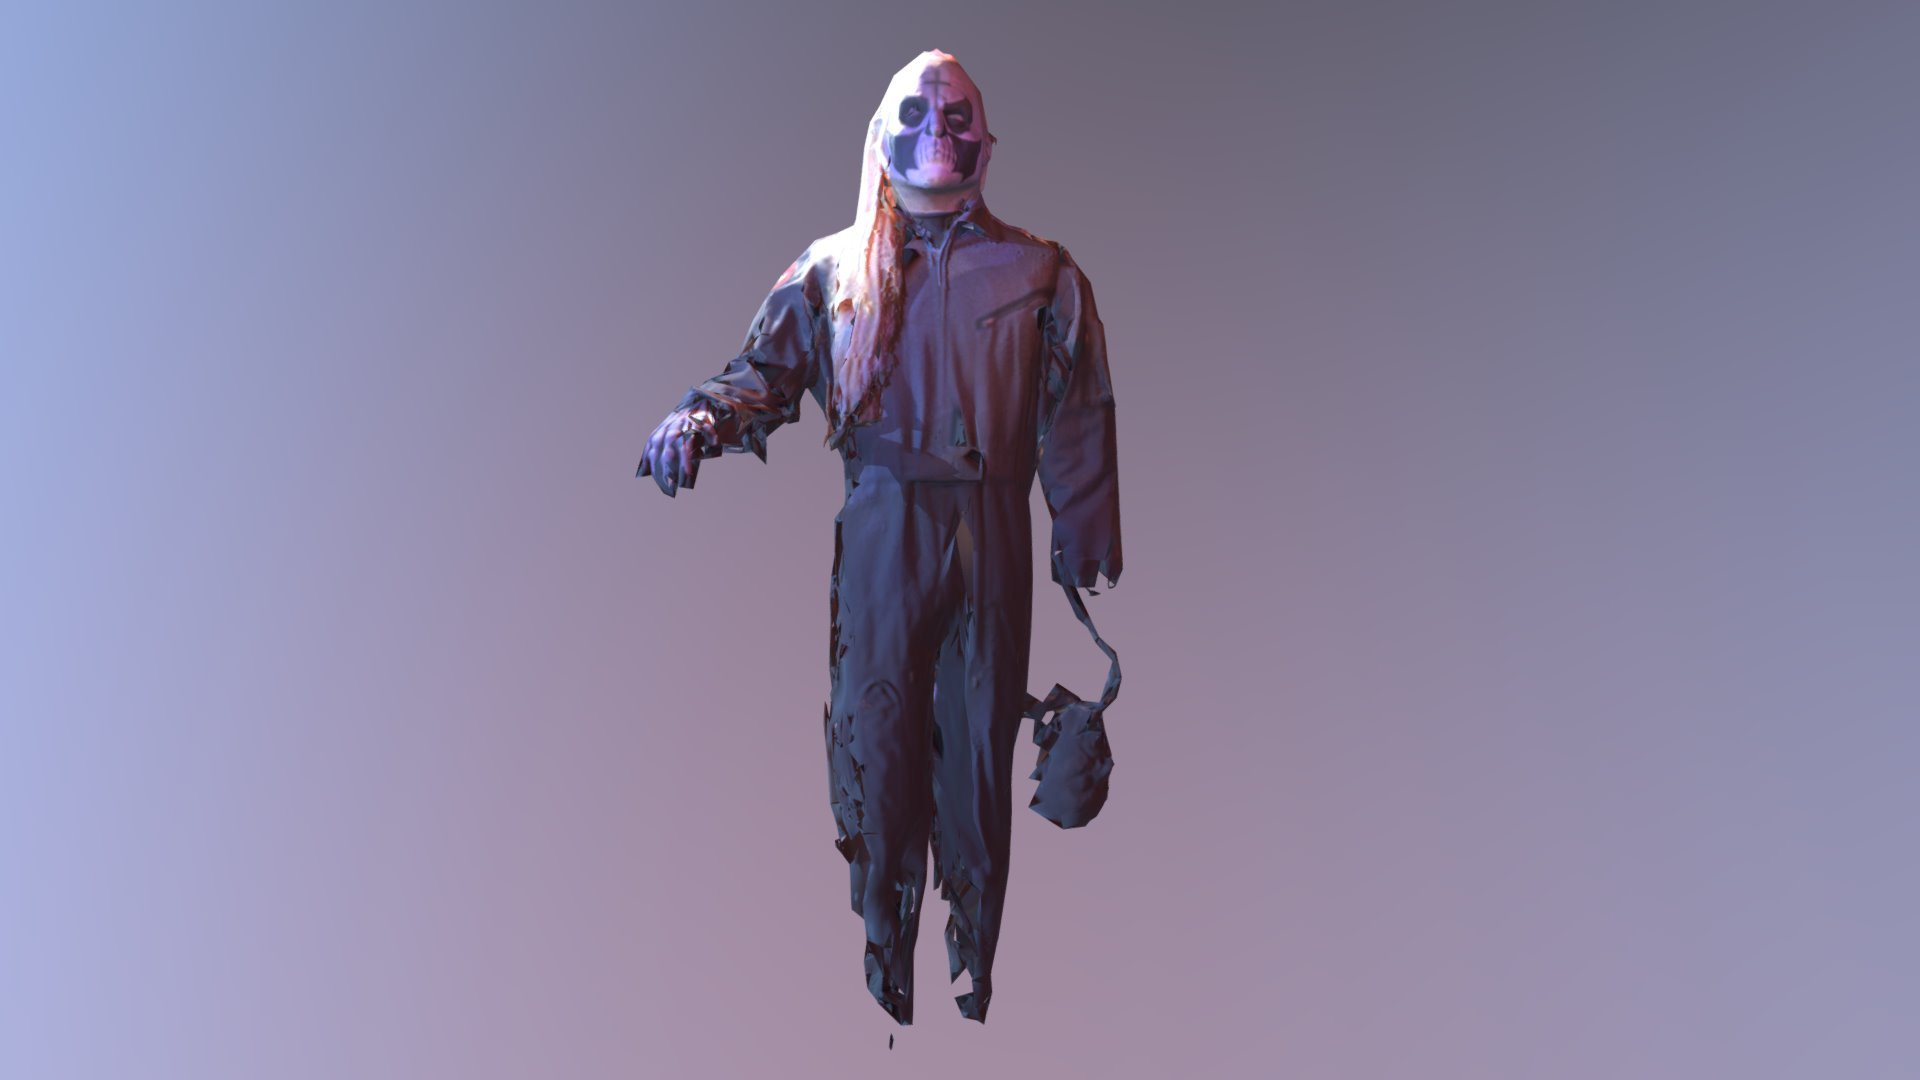 Scary Dude With Head On Hook